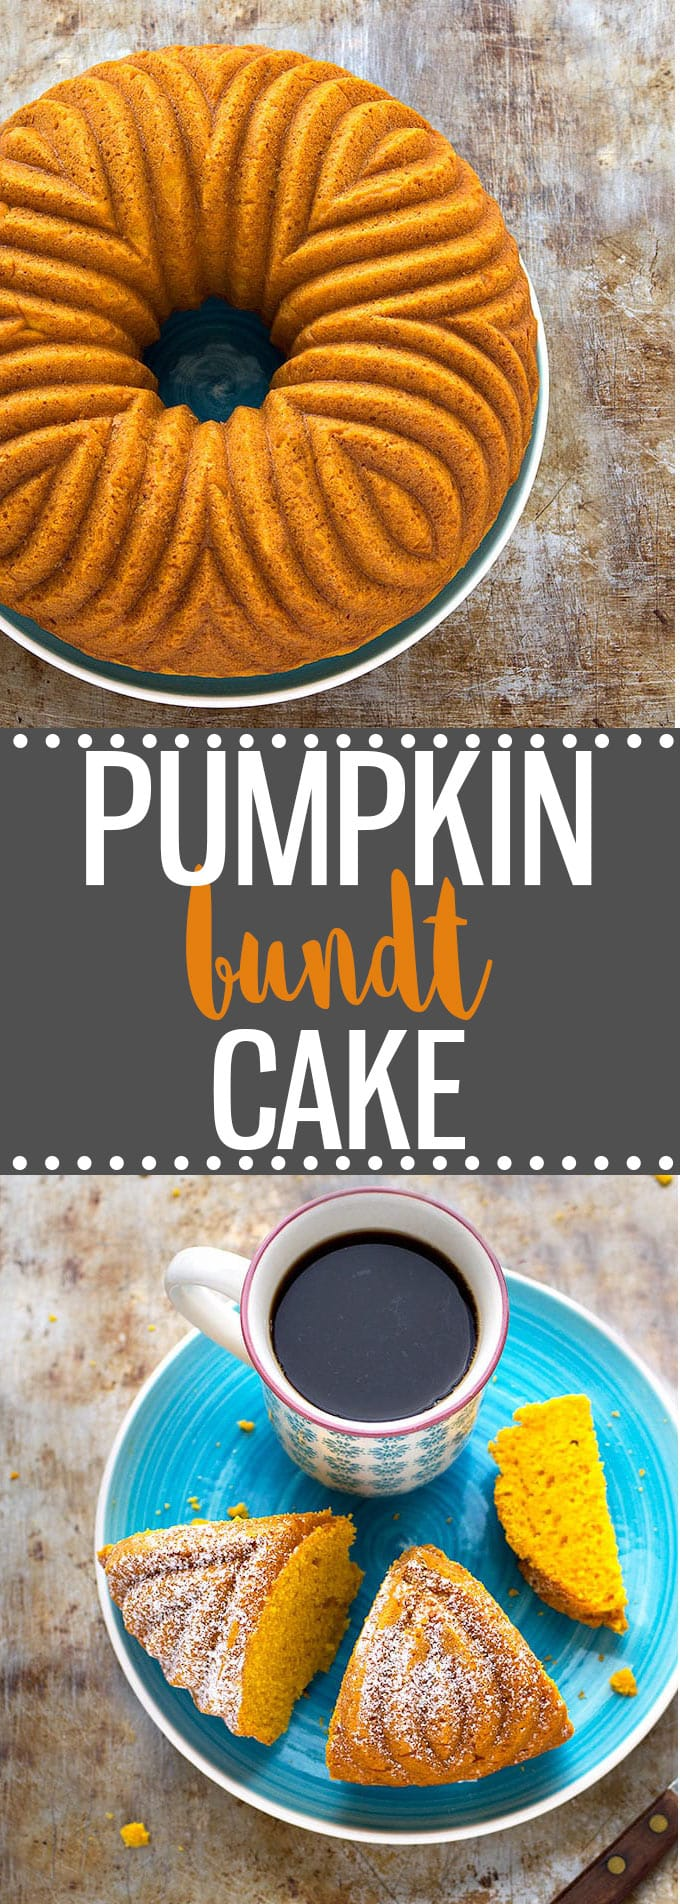 Easy Pumpkin Bundt Cake - Perfectly moist, soft, tender, and bursting with fall flavors!